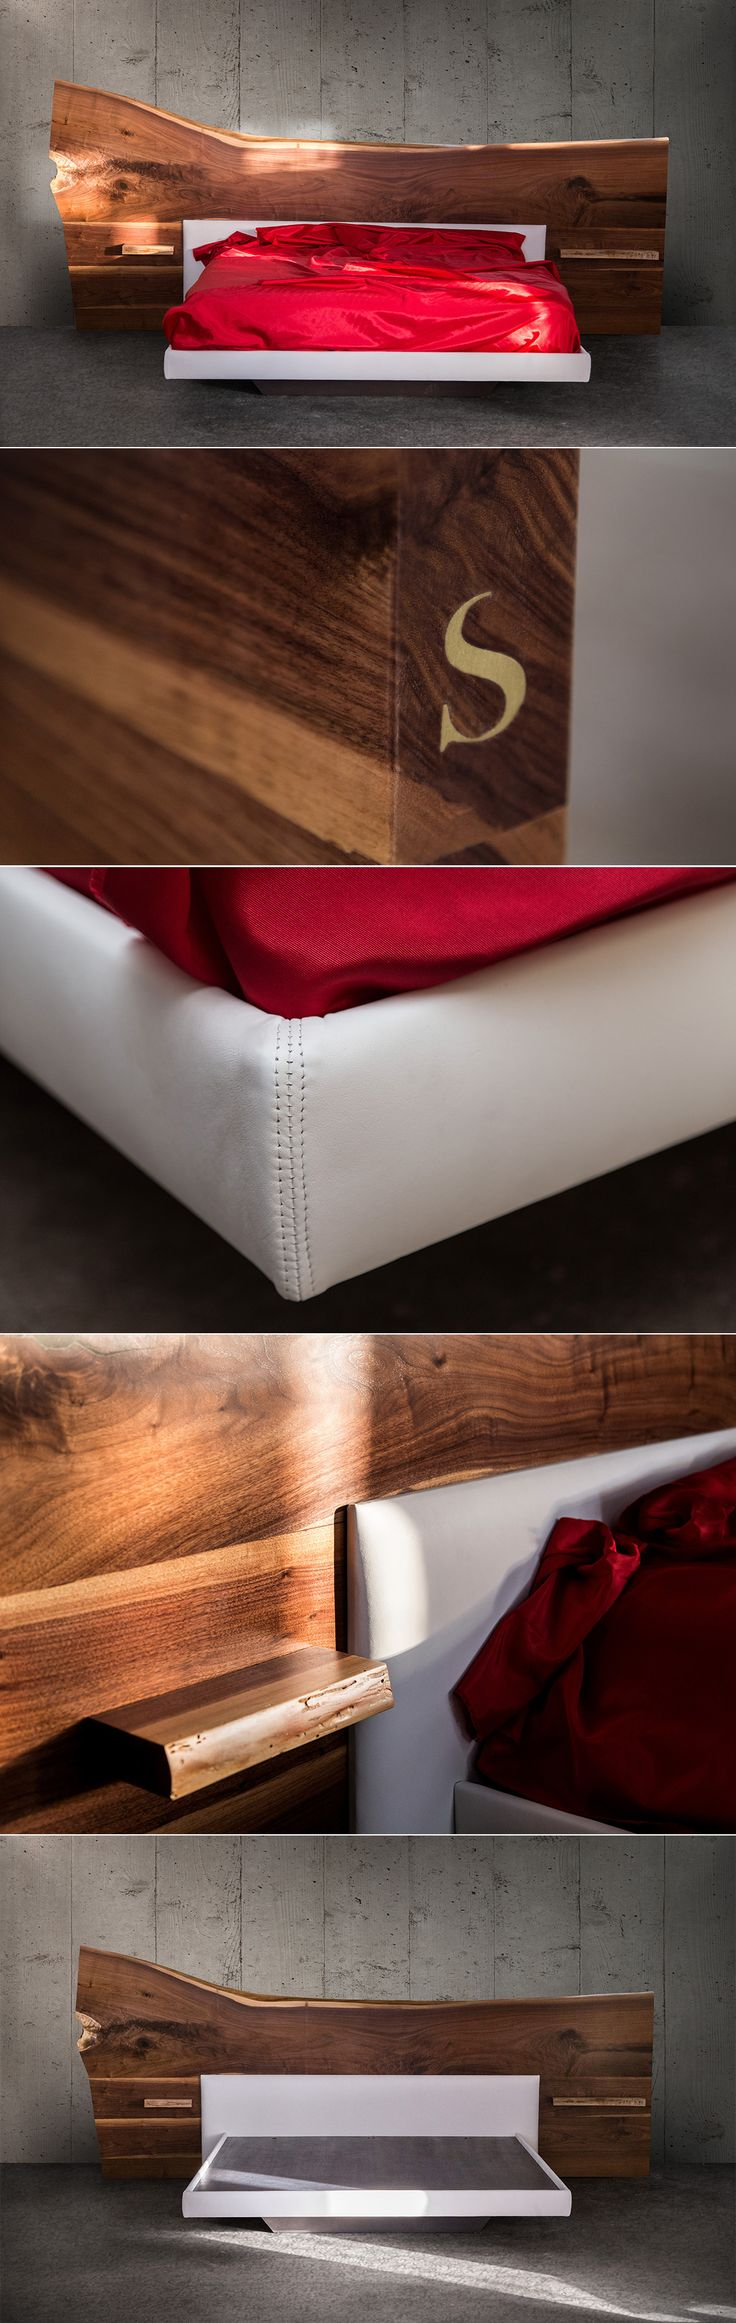 sentientfurniture-bedroom-furniture